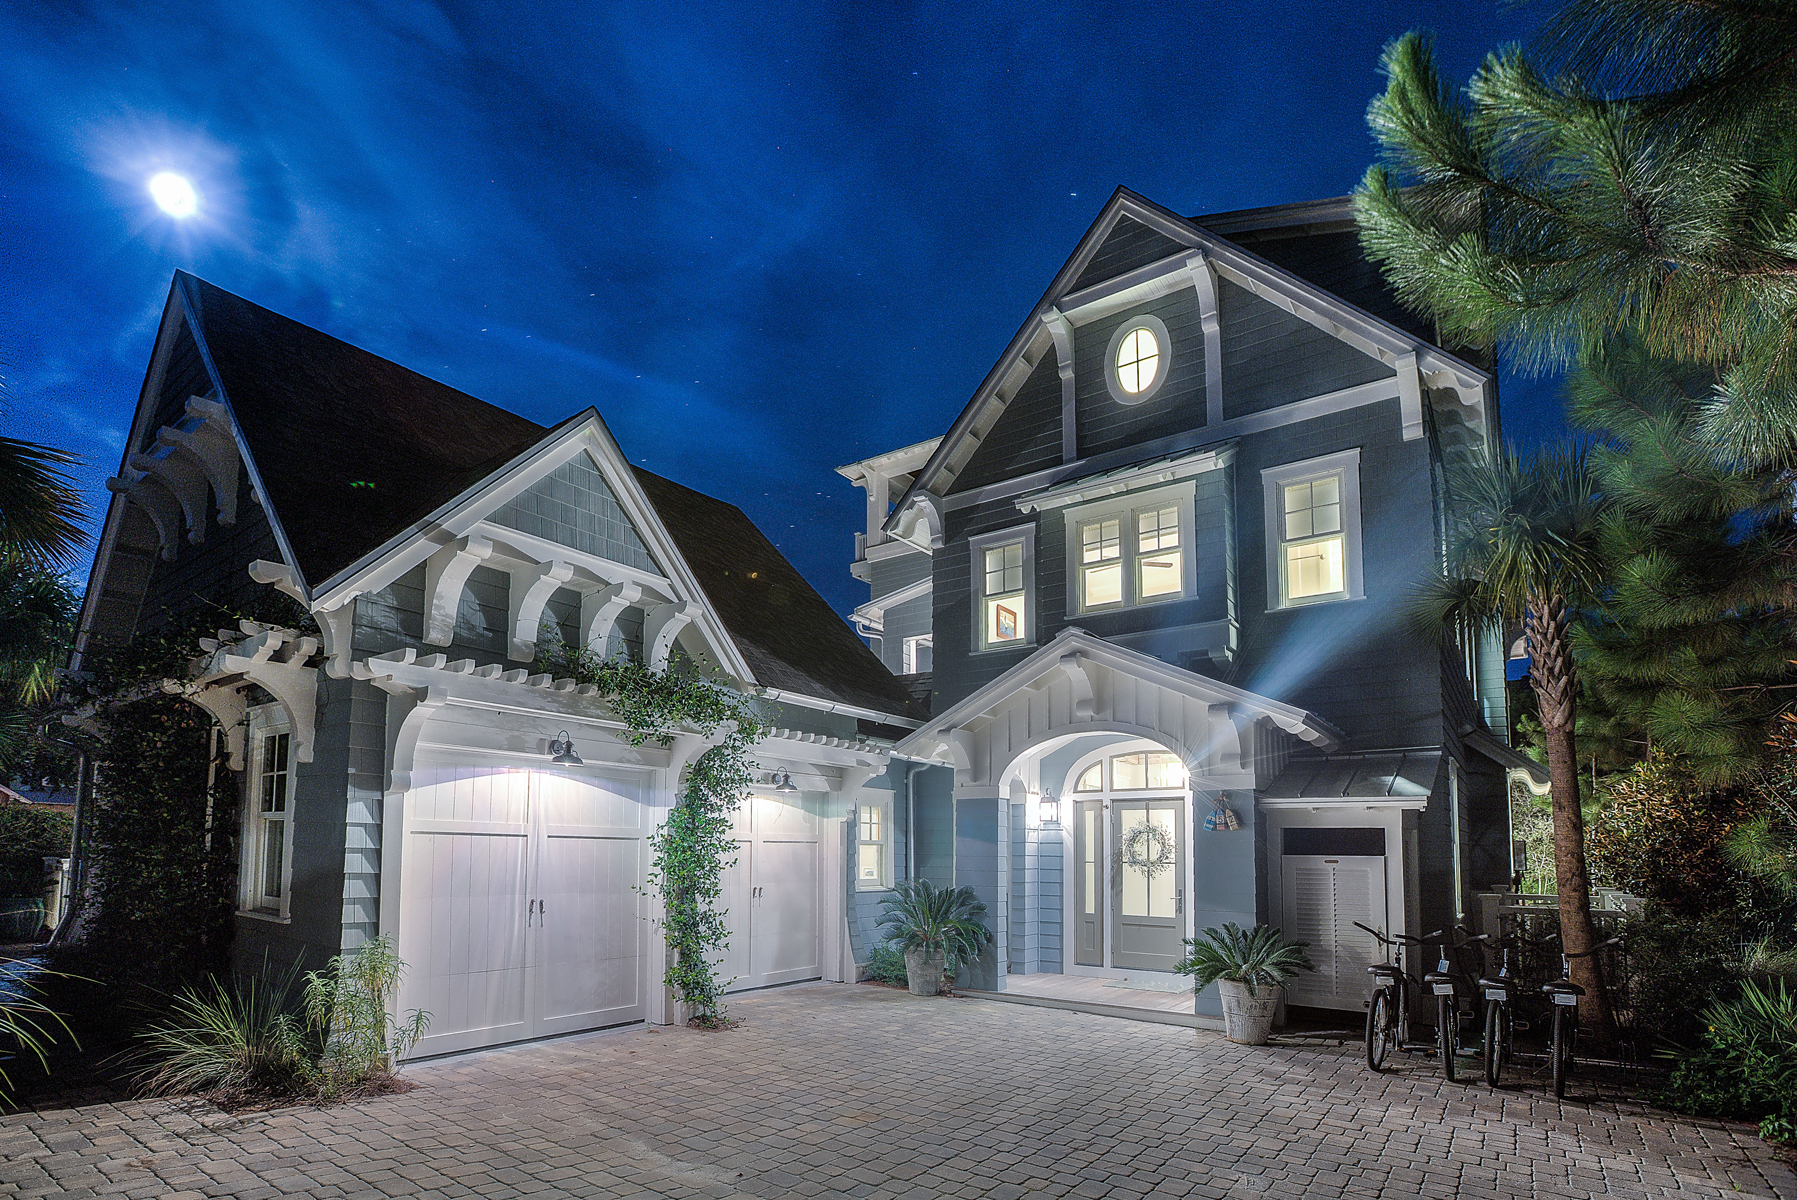 Single Family Home for Sale at STUNNING ESTATE IS A MASTERPIECE OF DESIGN AND DETAIL 152 Yacht Pond Lane Watersound, Florida, 32461 United States